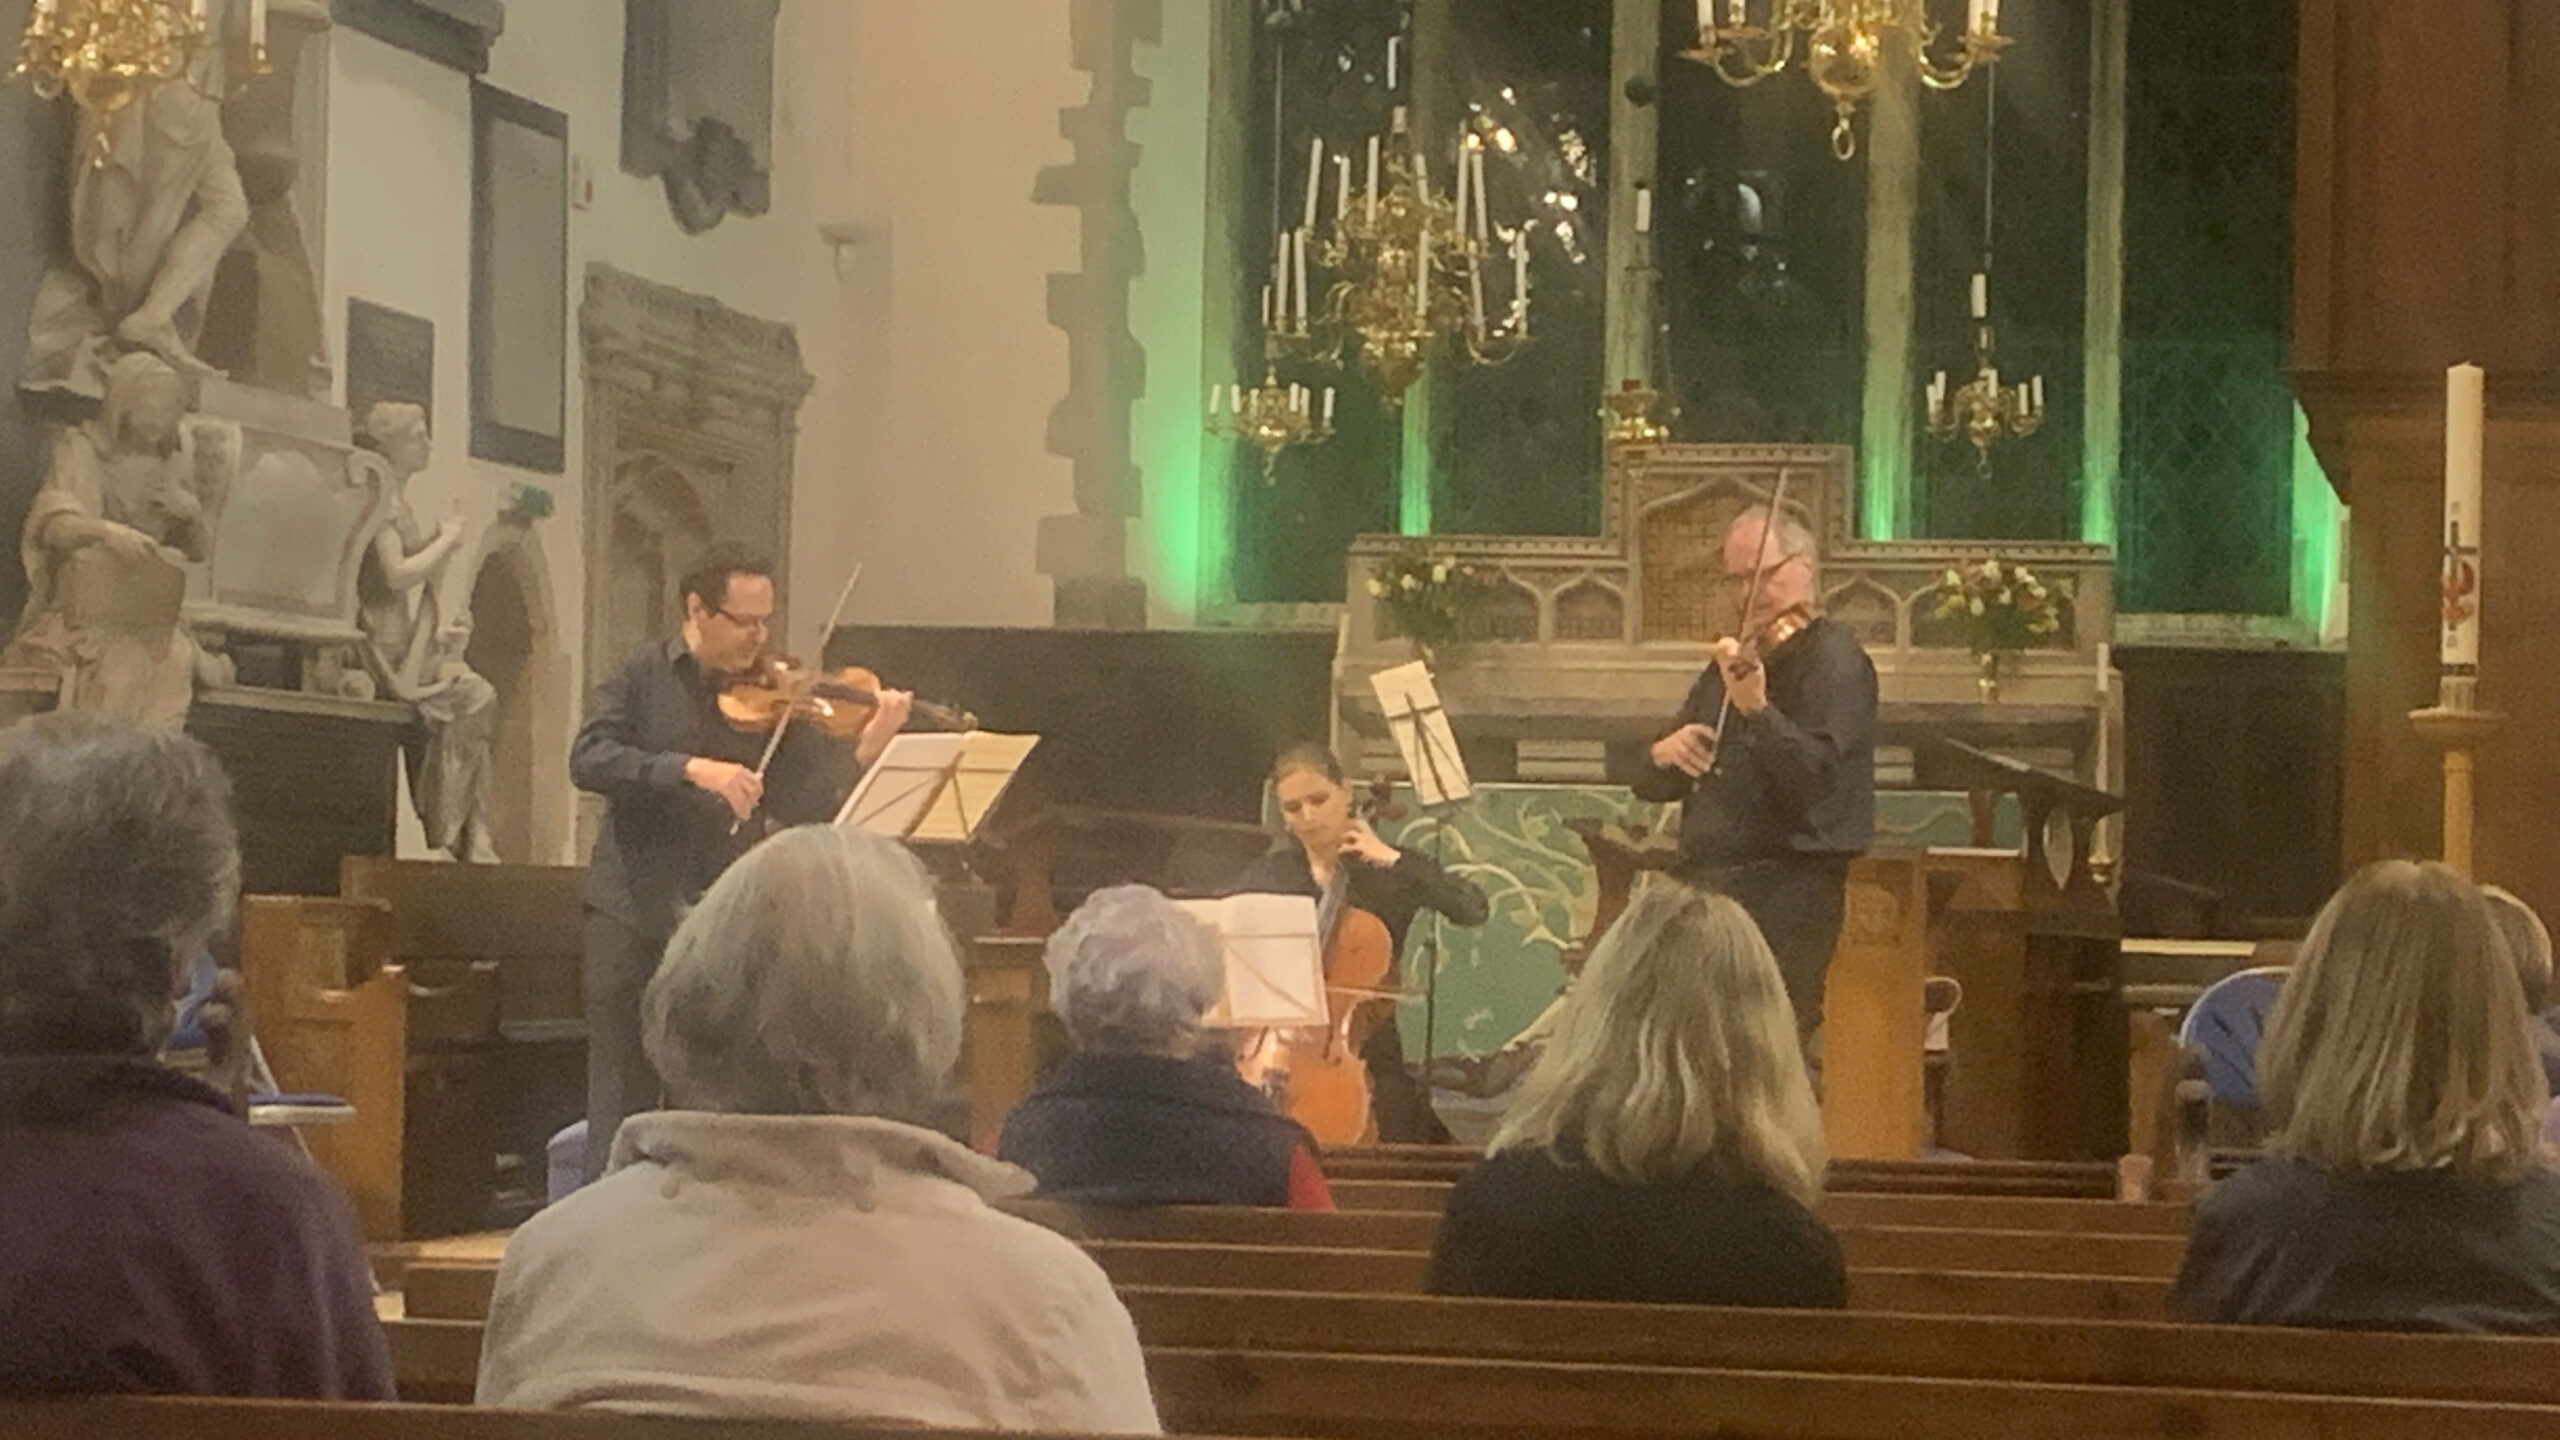 Covid-safe chamber concerts